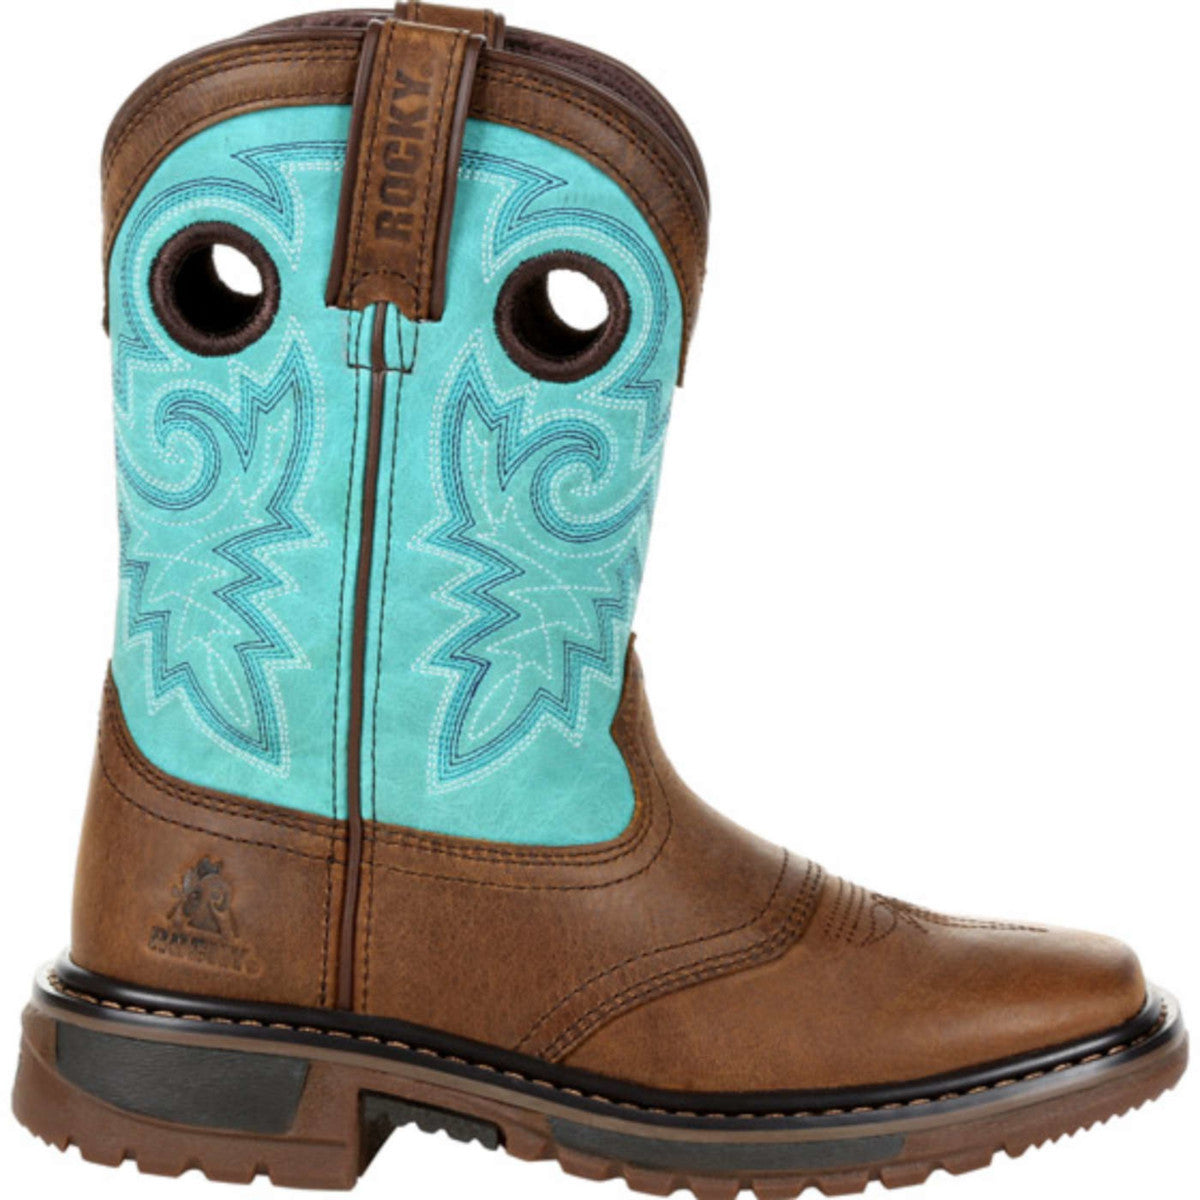 Rocky Kids' Original Ride FLX Cowgirl Boots